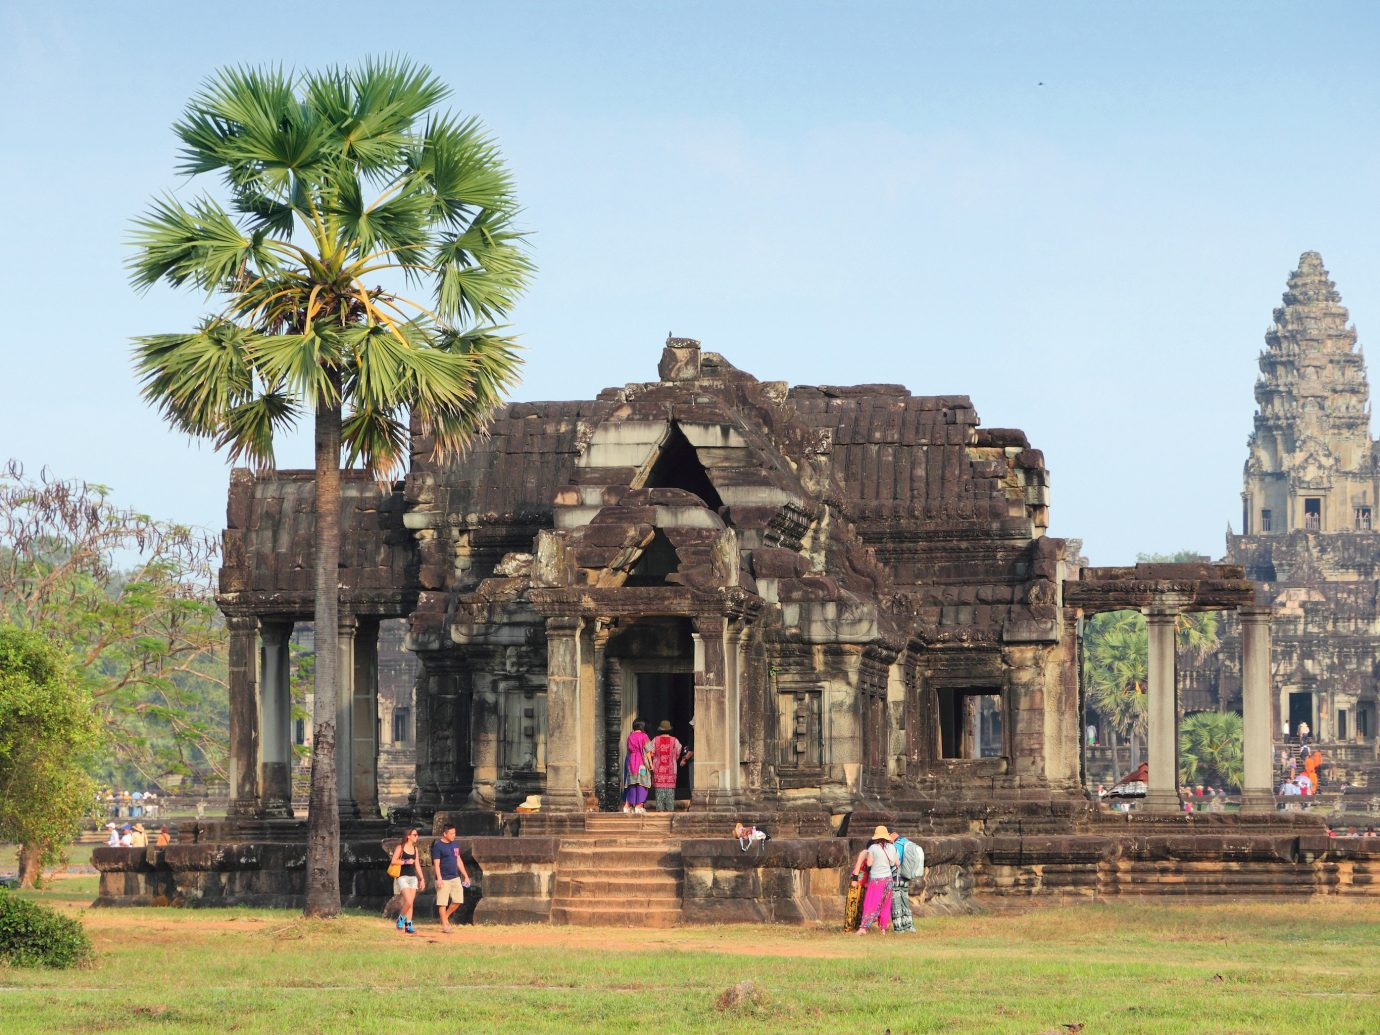 Arts + Culture Landmarks Trip Ideas outdoor grass sky building hindu temple historic site archaeological site ancient history tree arecales temple place of worship palm tree Ruins old stone